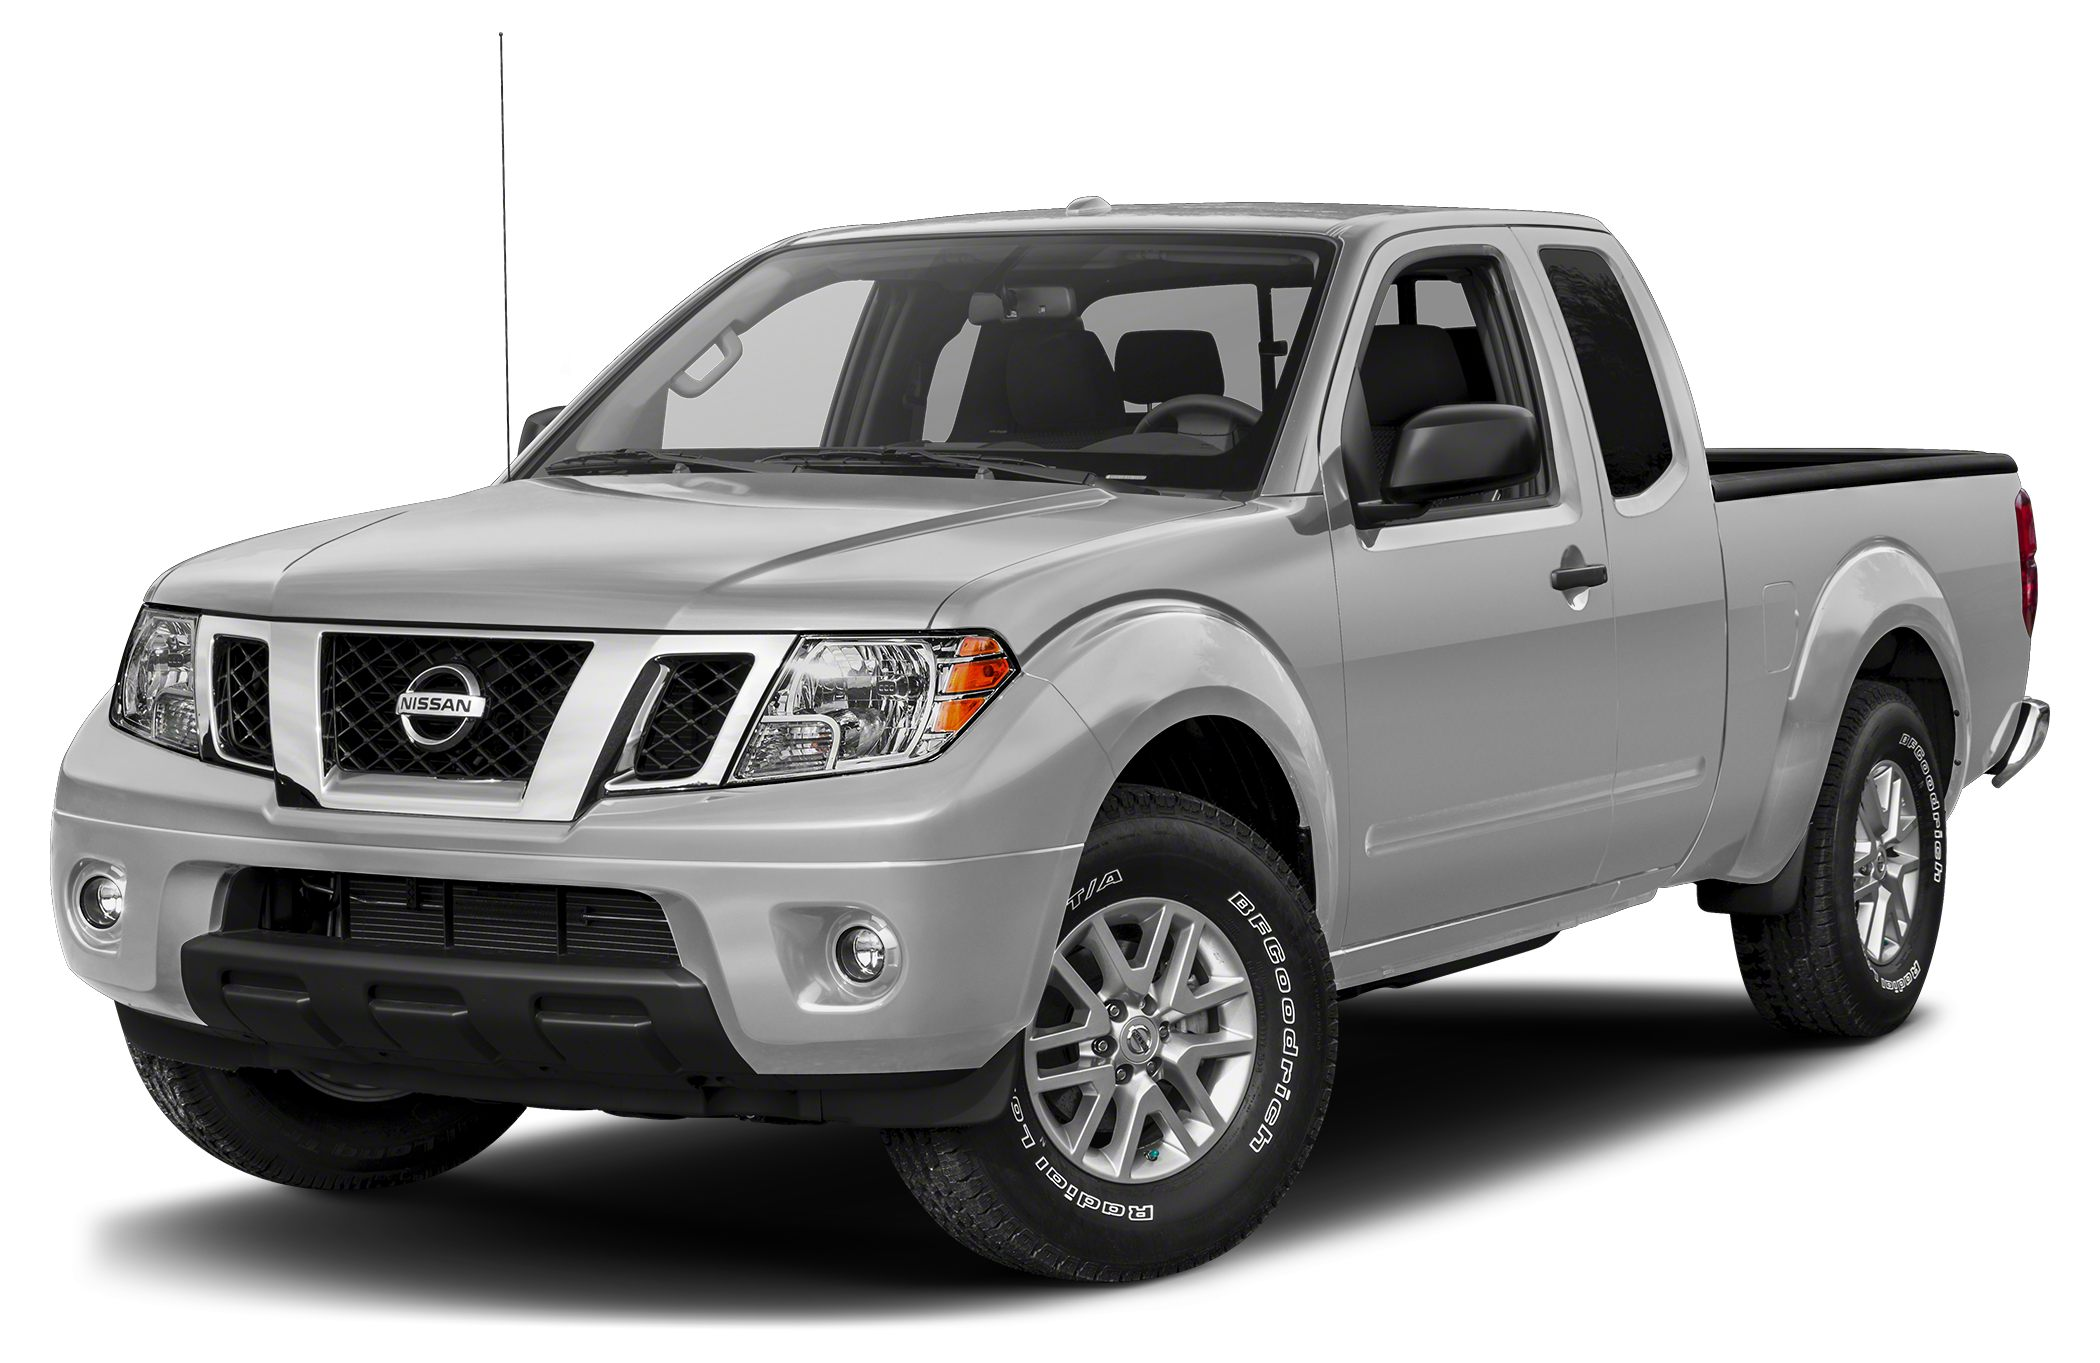 2016 Nissan Frontier SV EPA 22 MPG Hwy16 MPG City CARFAX 1-Owner LOW MILES - 618 SV trim Bril